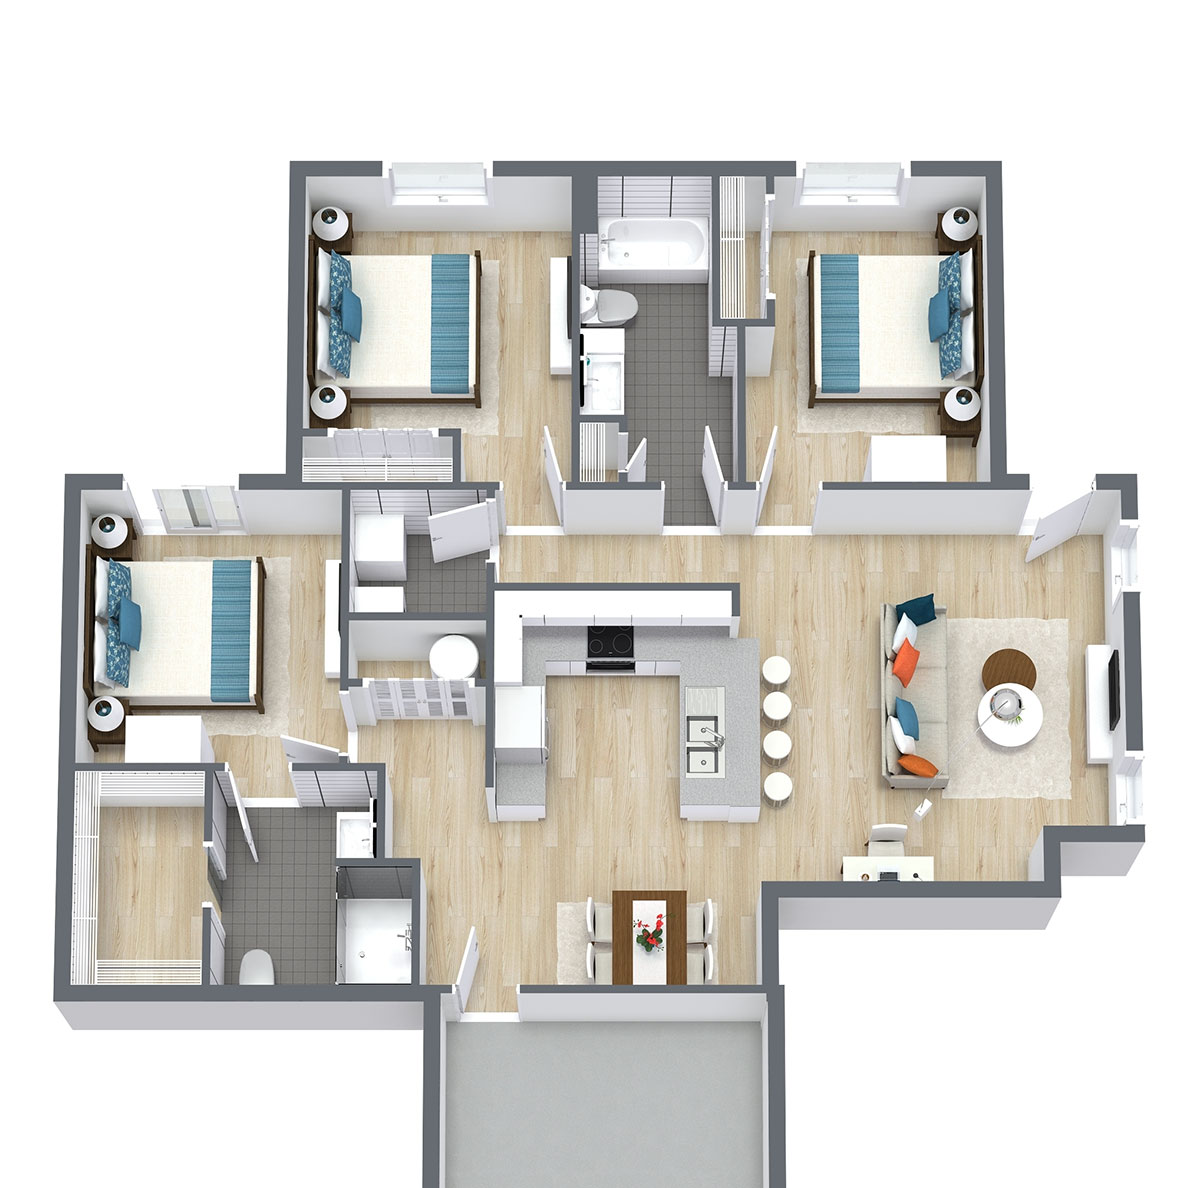 Floorplan - Three Bed Two Bath 1353 image